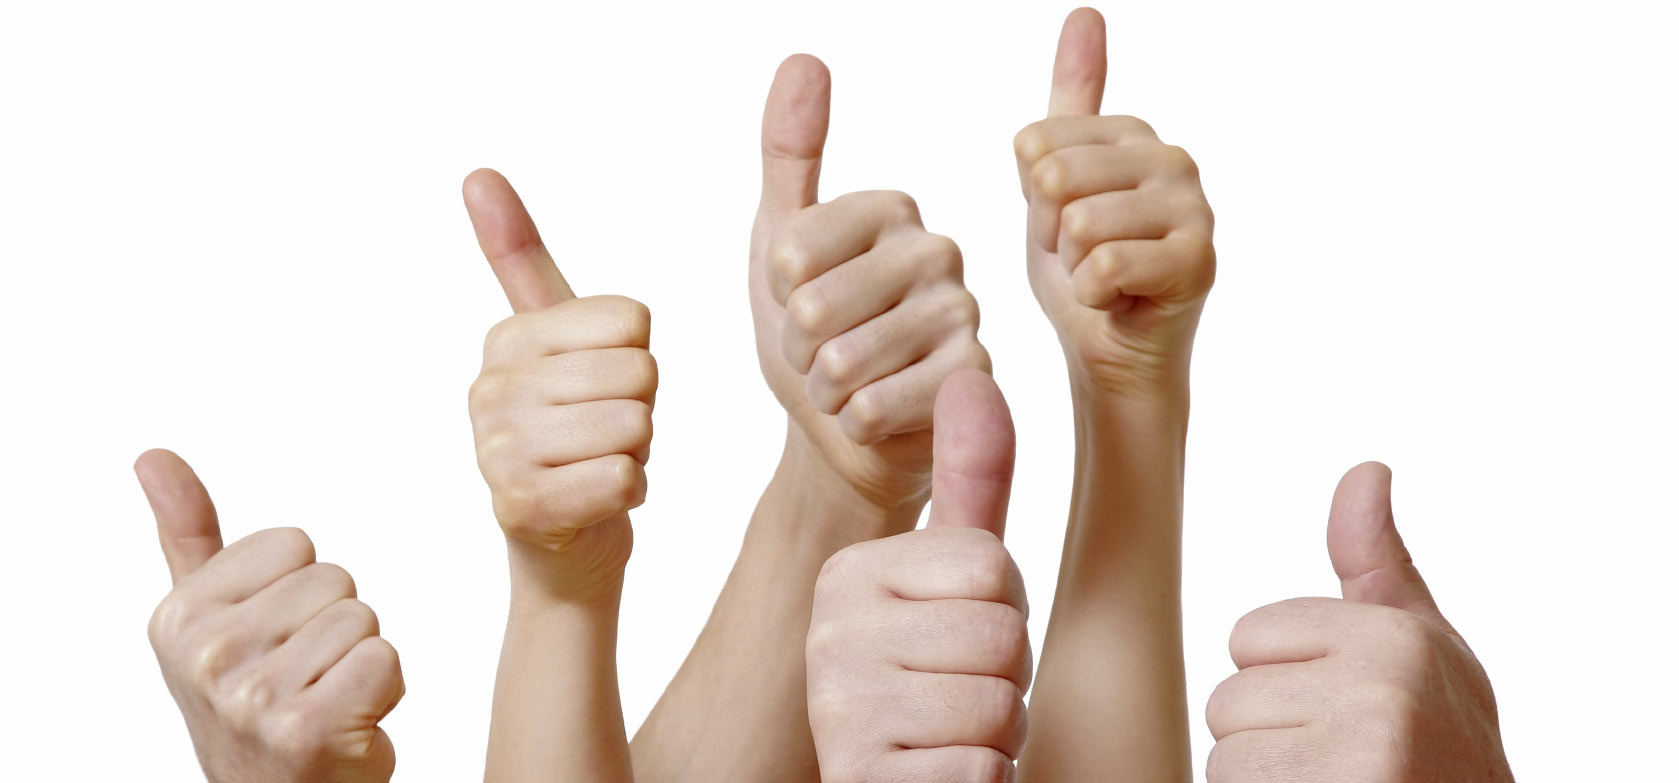 A group of thumbs up